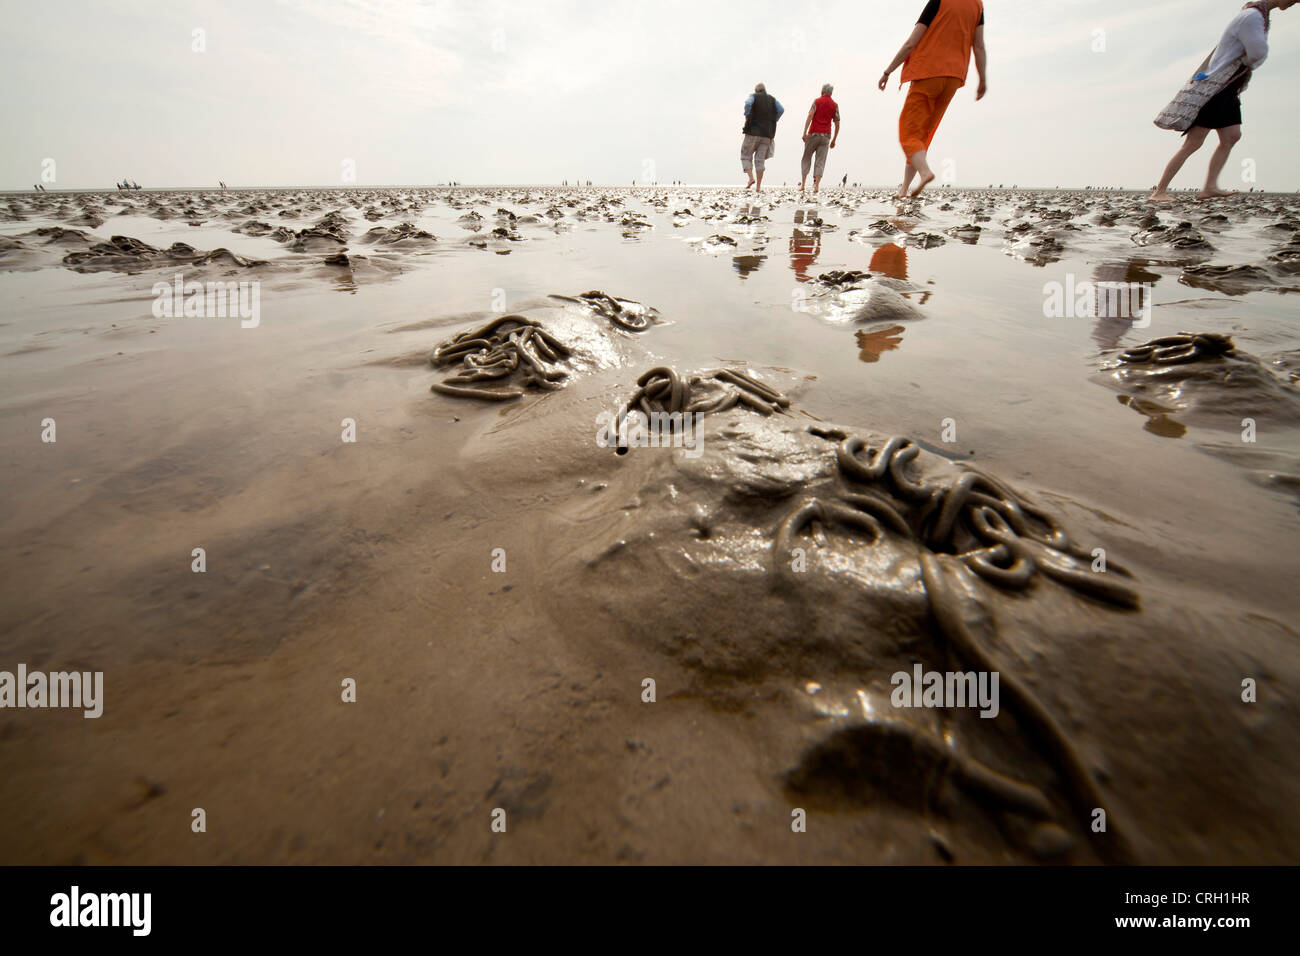 Lugworms and tourists on the mud flats during low tide, Wadden Sea, UNESCO World Heritage Site, Buesum, Germany - Stock Image